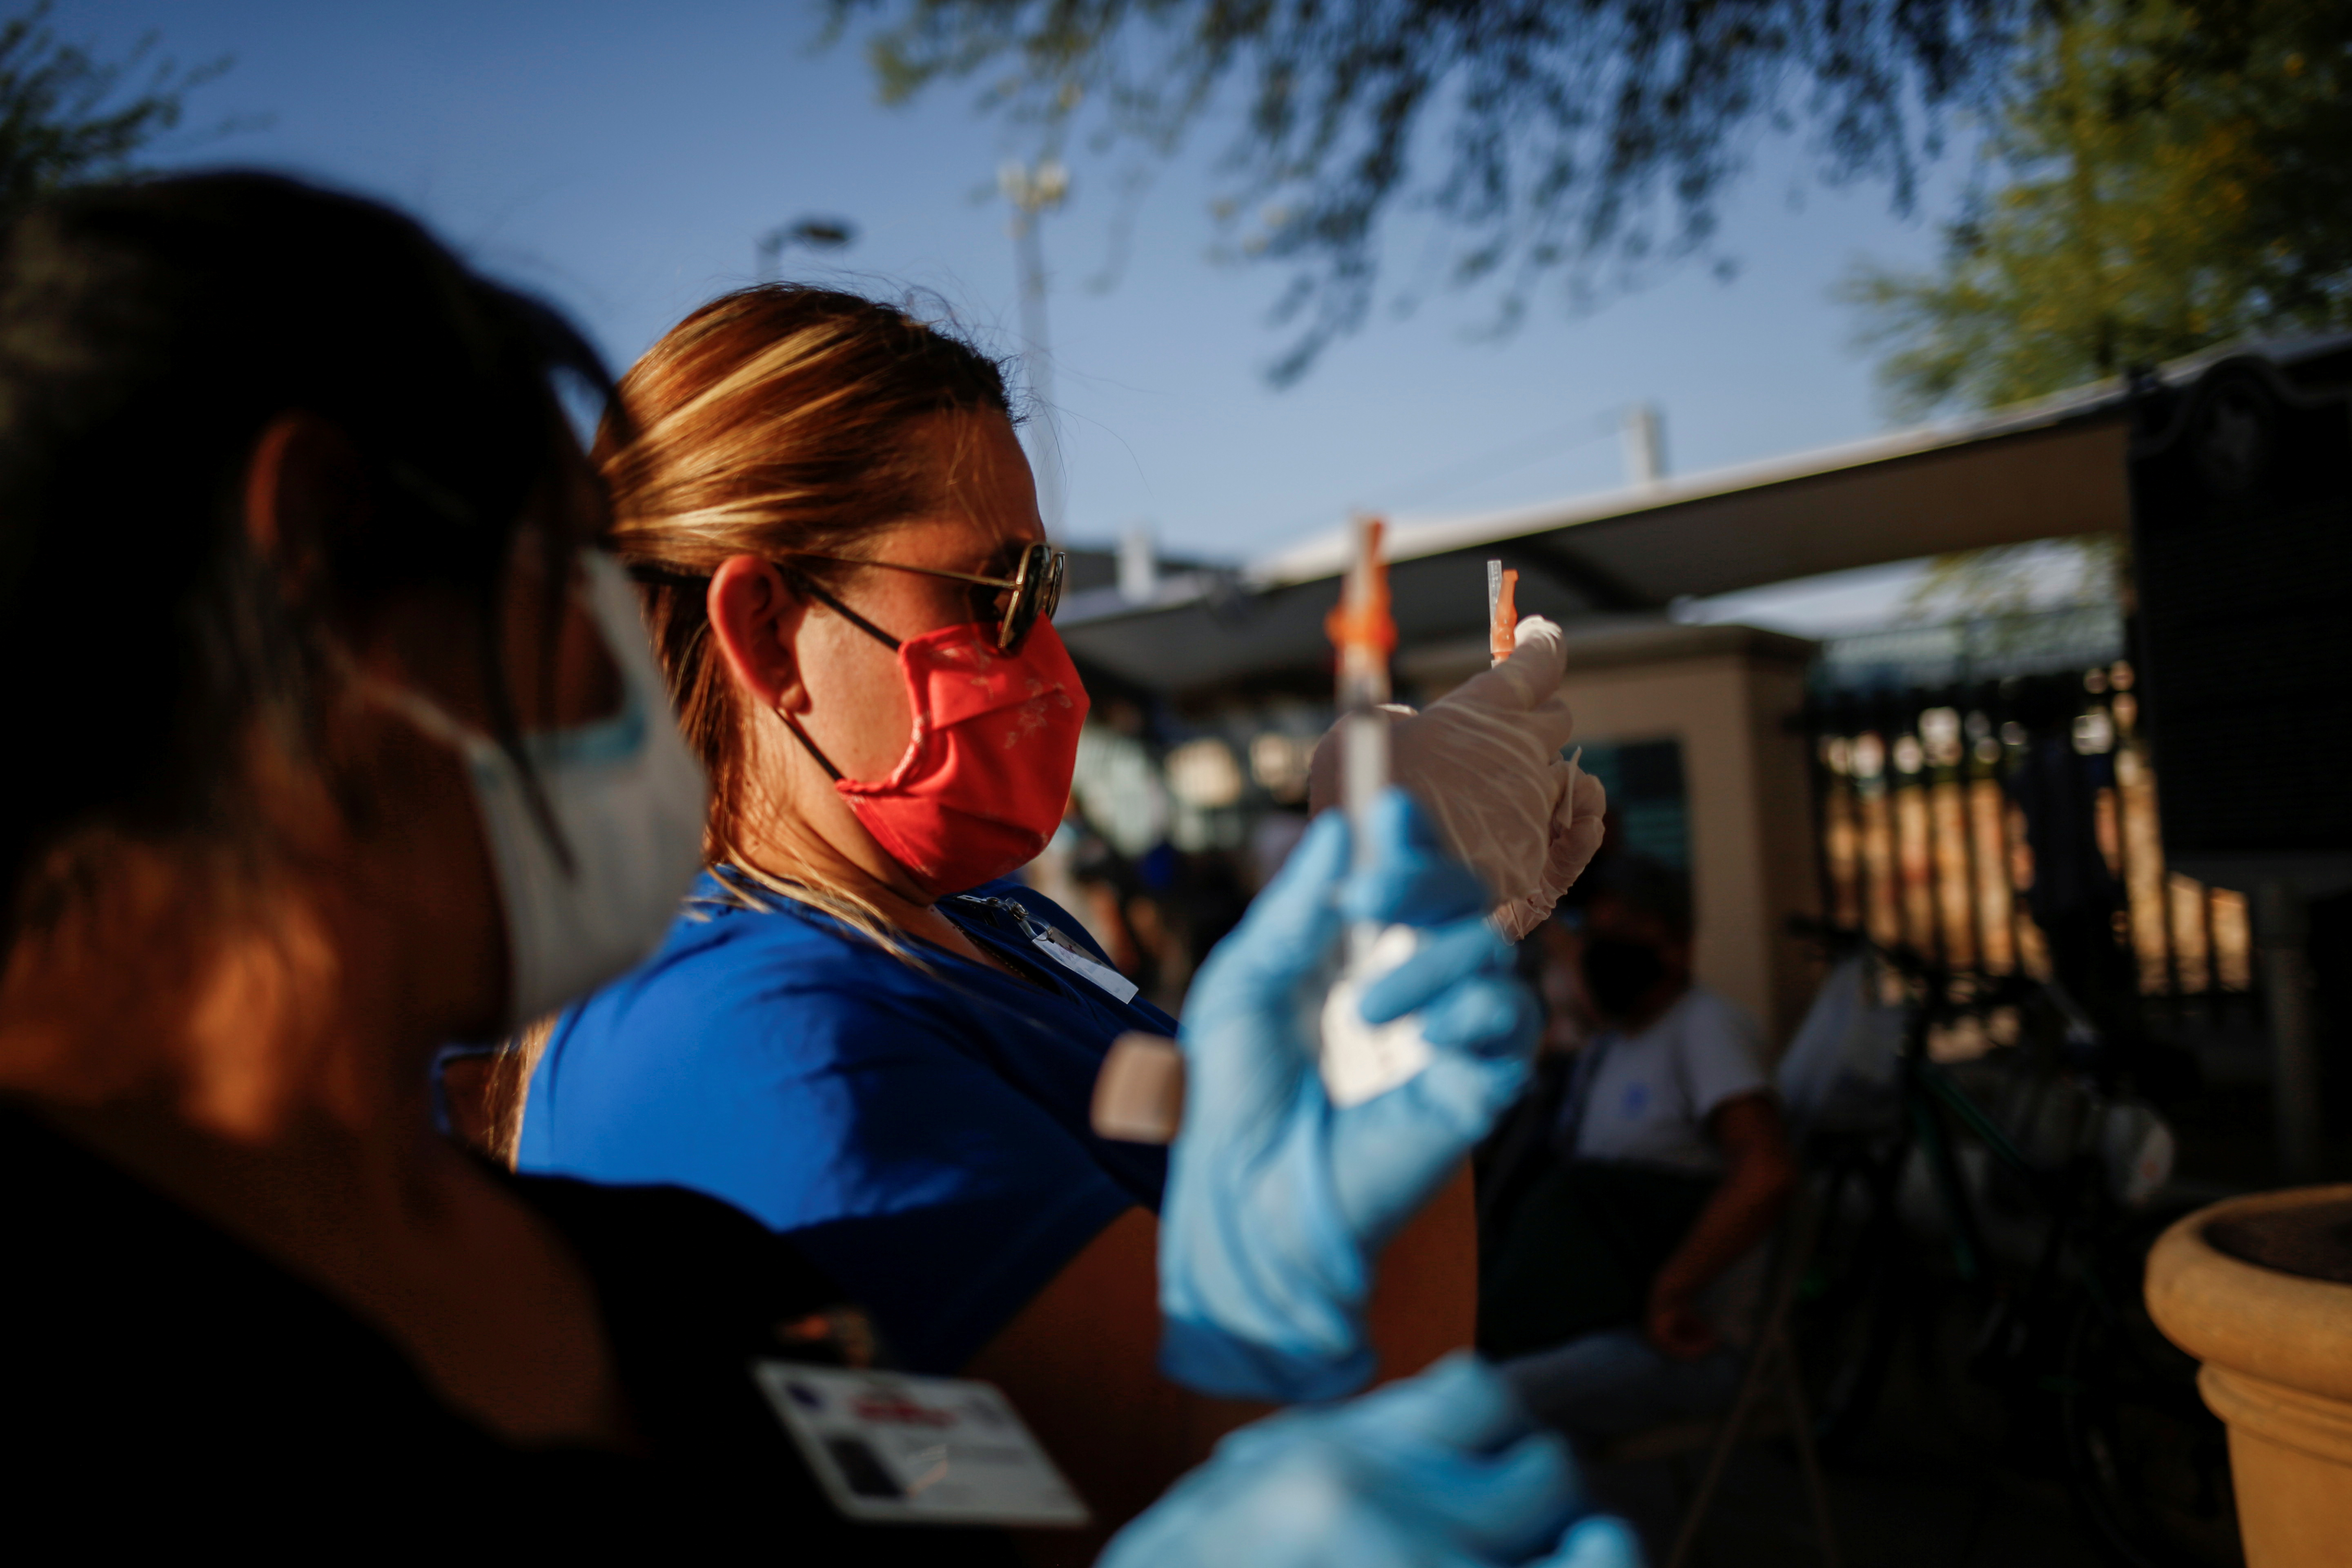 Healthcare workers from the El Paso Fire Department prepare Moderna vaccines against the coronavirus disease (COVID-19) at a vaccination centre near the Santa Fe International Bridge, in El Paso, Texas, U.S May 7, 2021. Picture taken May 7, 2021.  REUTERS/Jose Luis Gonzalez